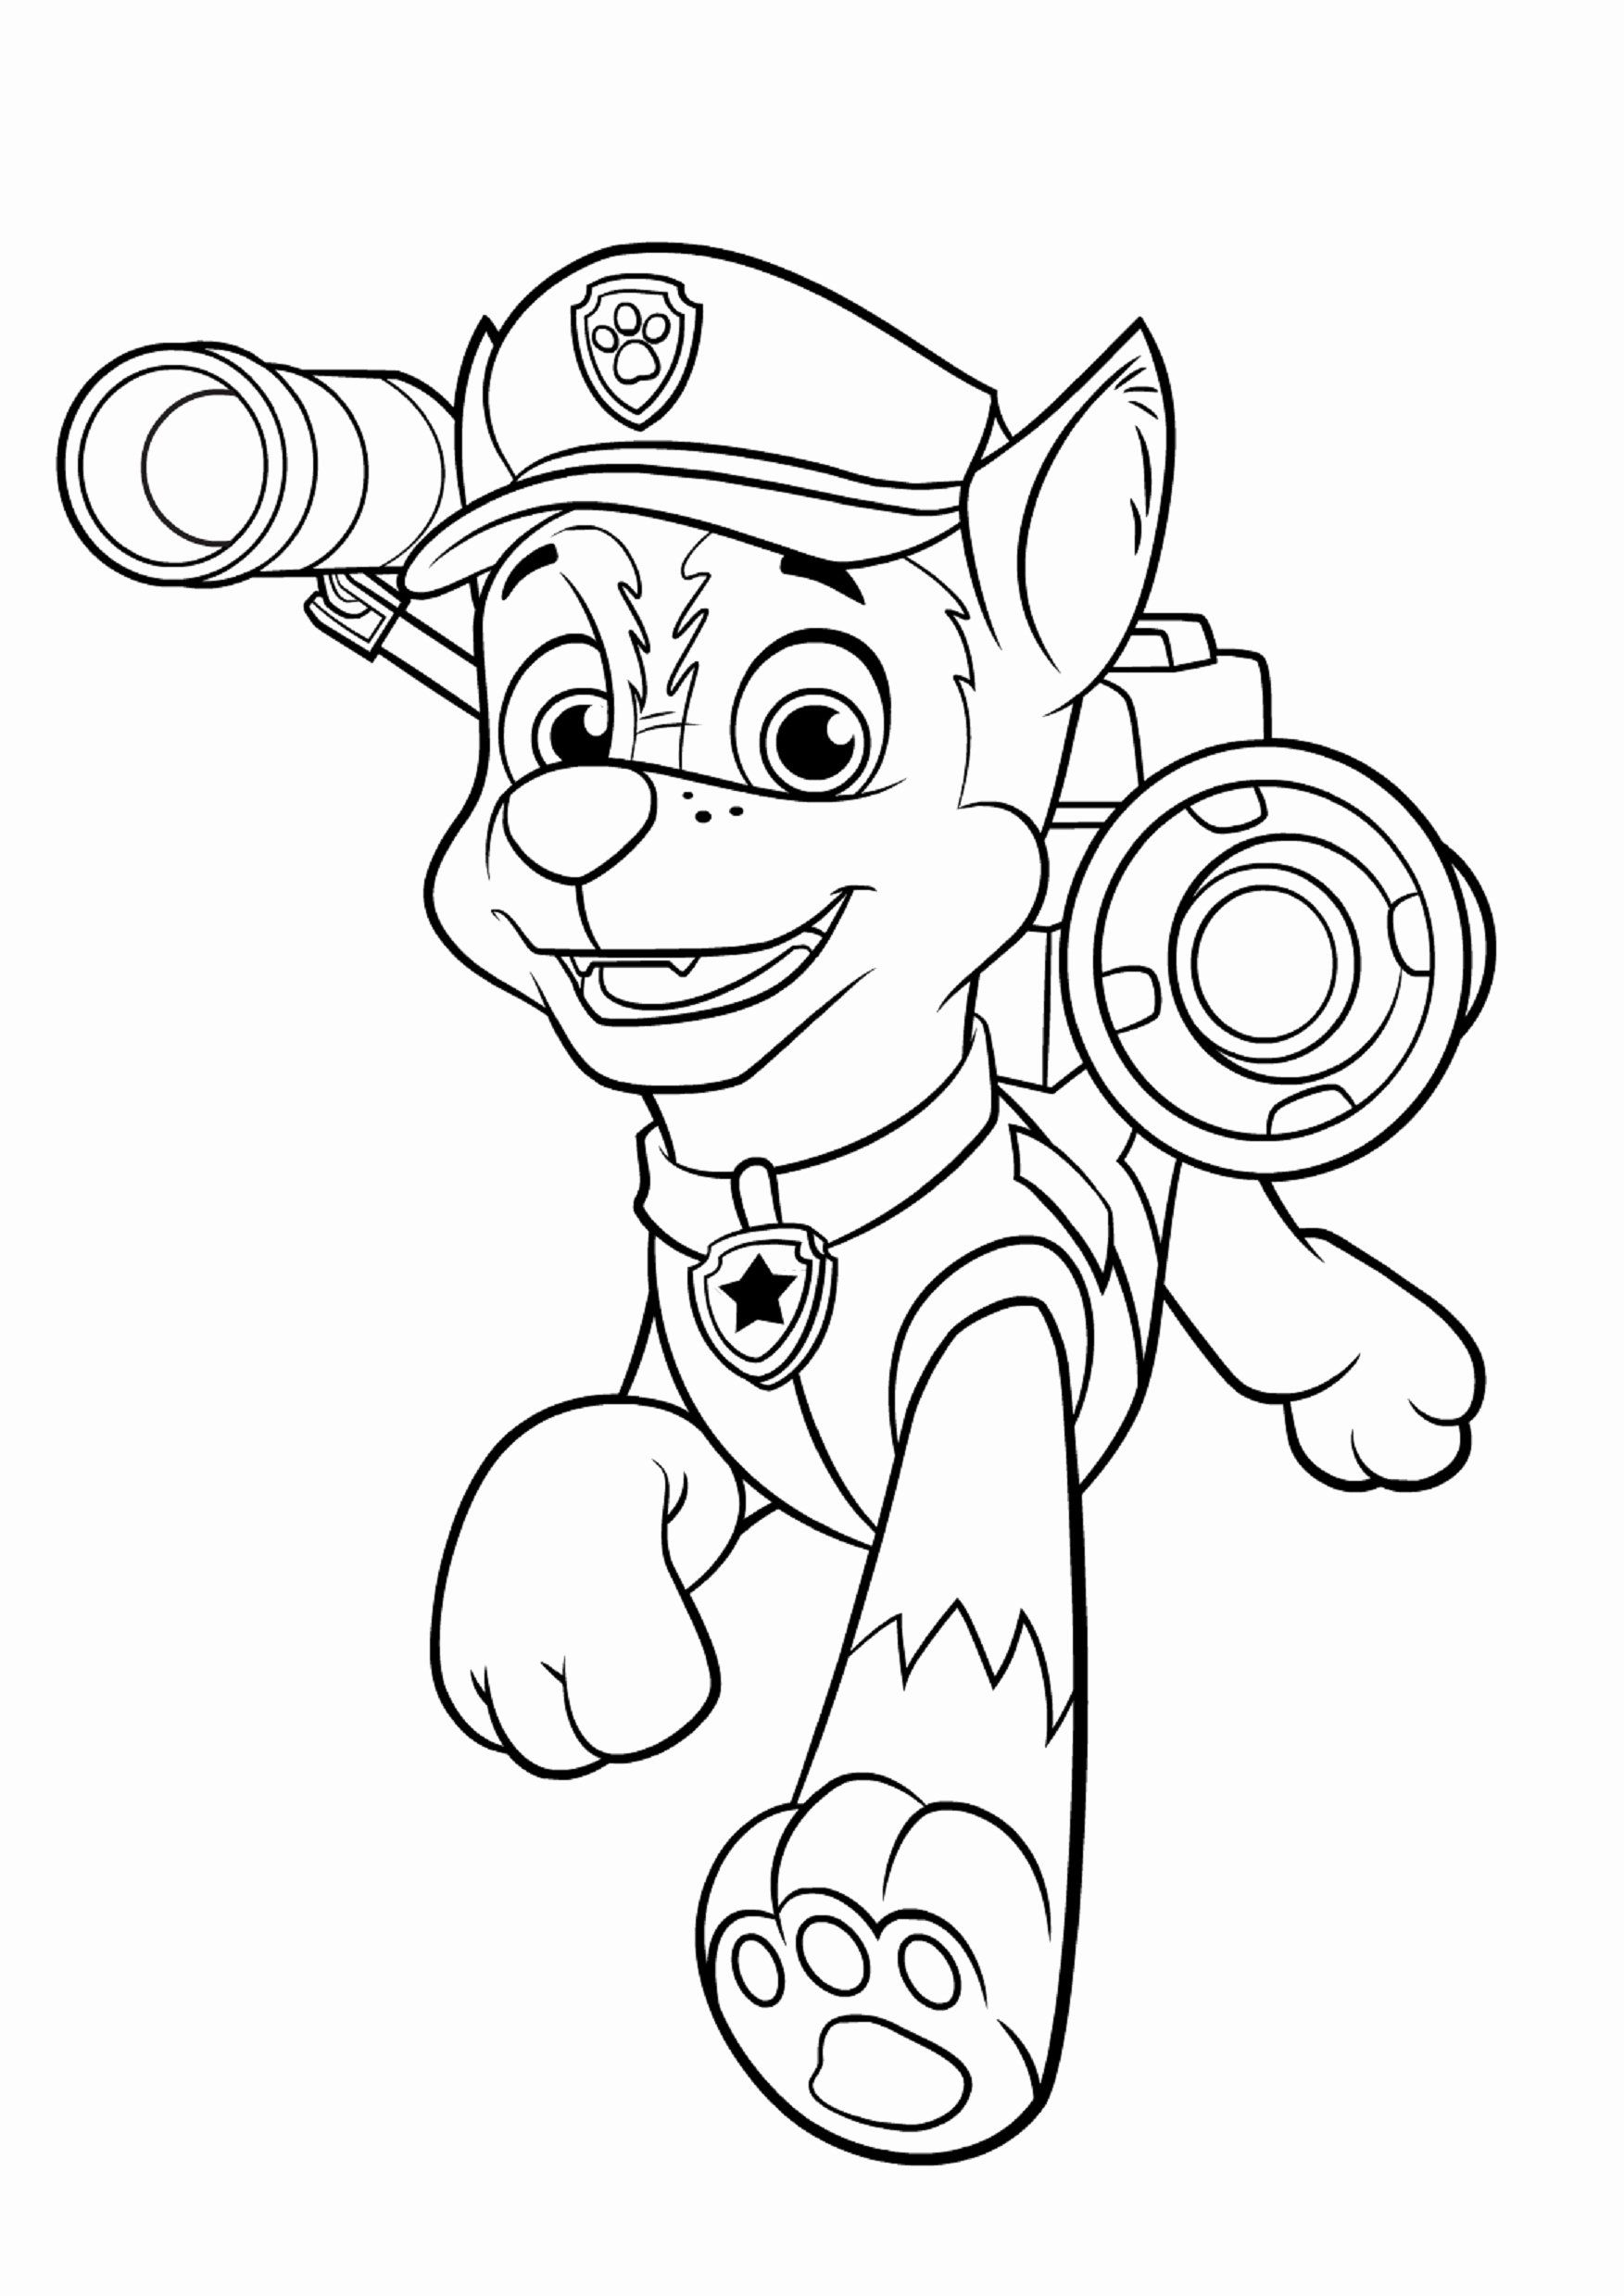 Paw Patrol Chase Coloring Page Fresh Step by Step How to